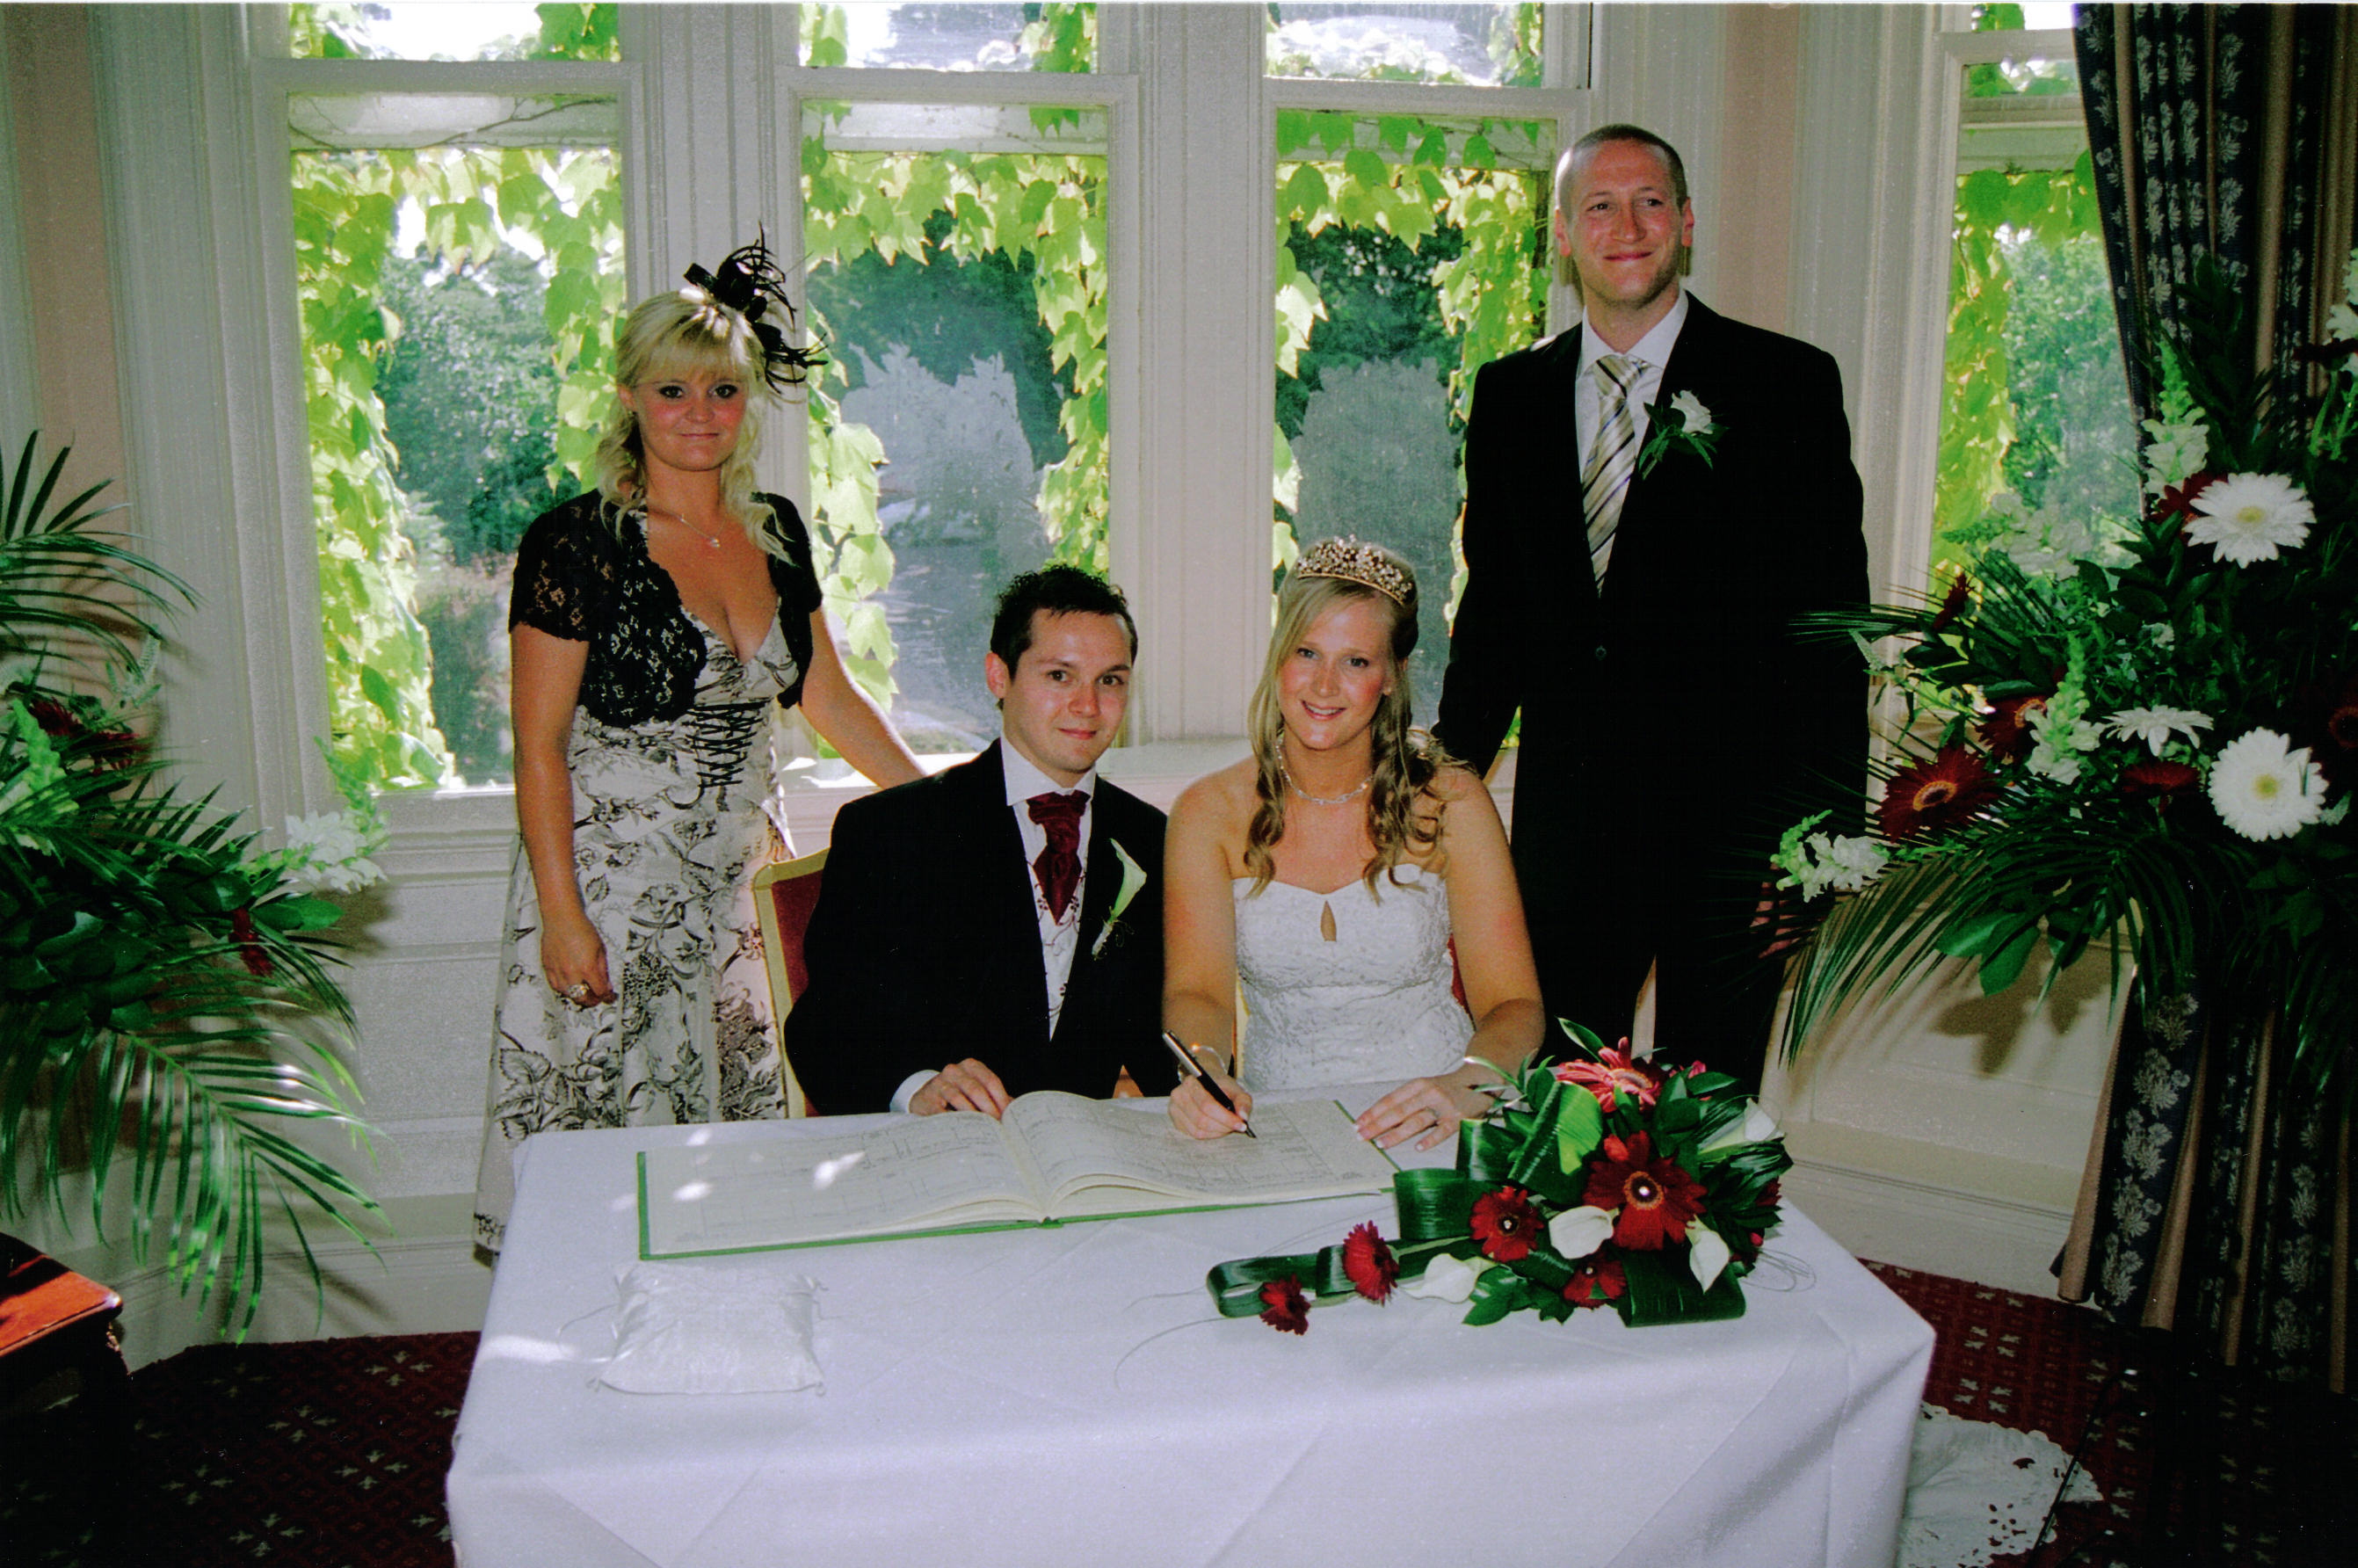 Signing Of The Marriage Register With Witnesses Present At Sprowston Manor UK